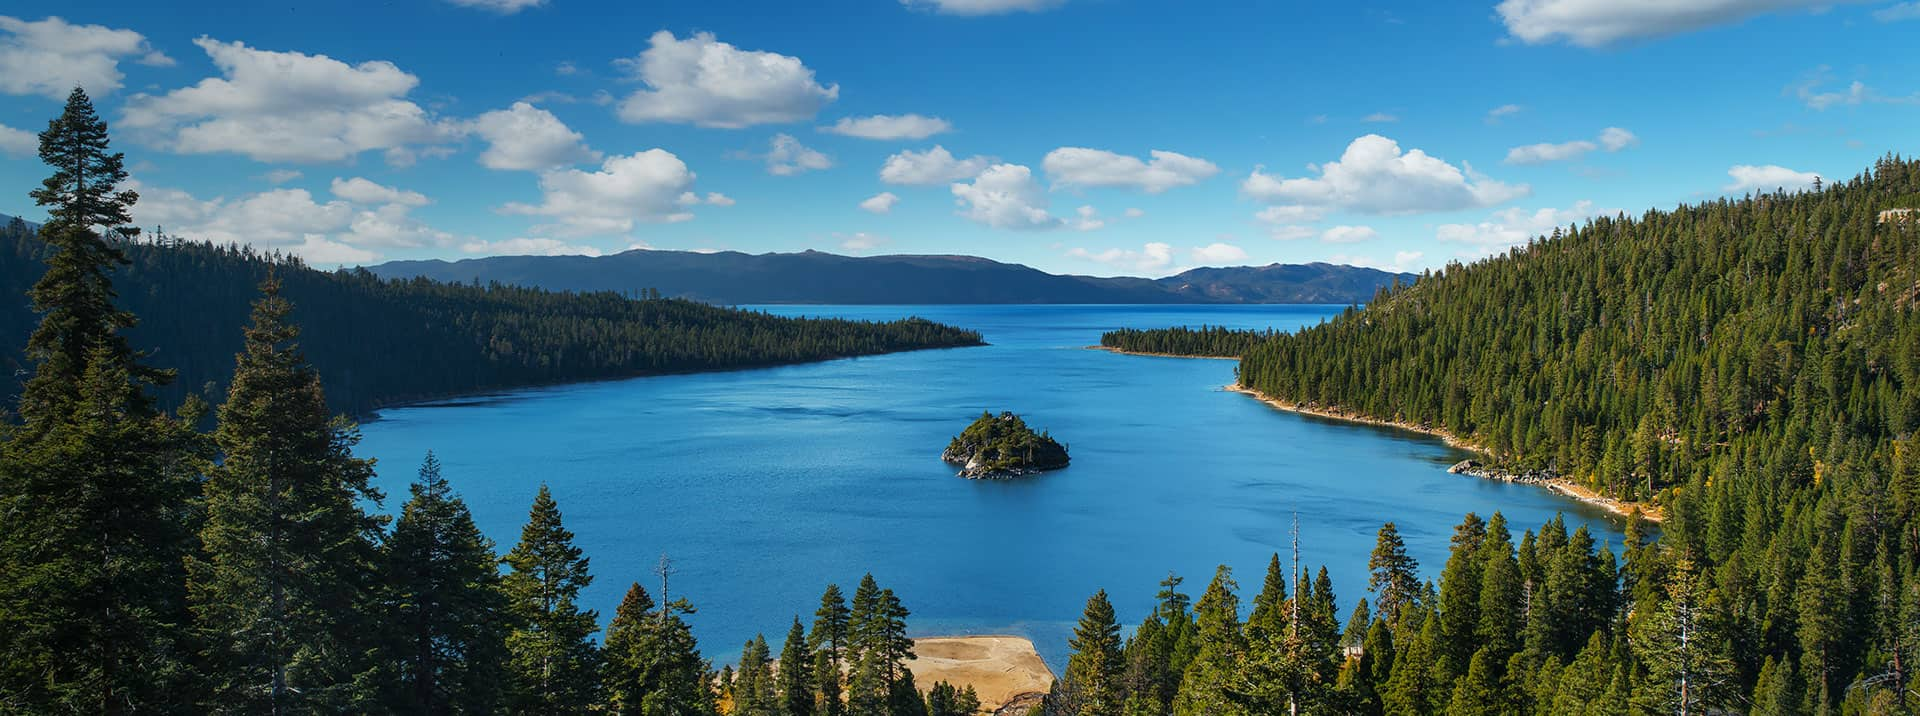 Featured-Image_LakeTahoe_1920x716